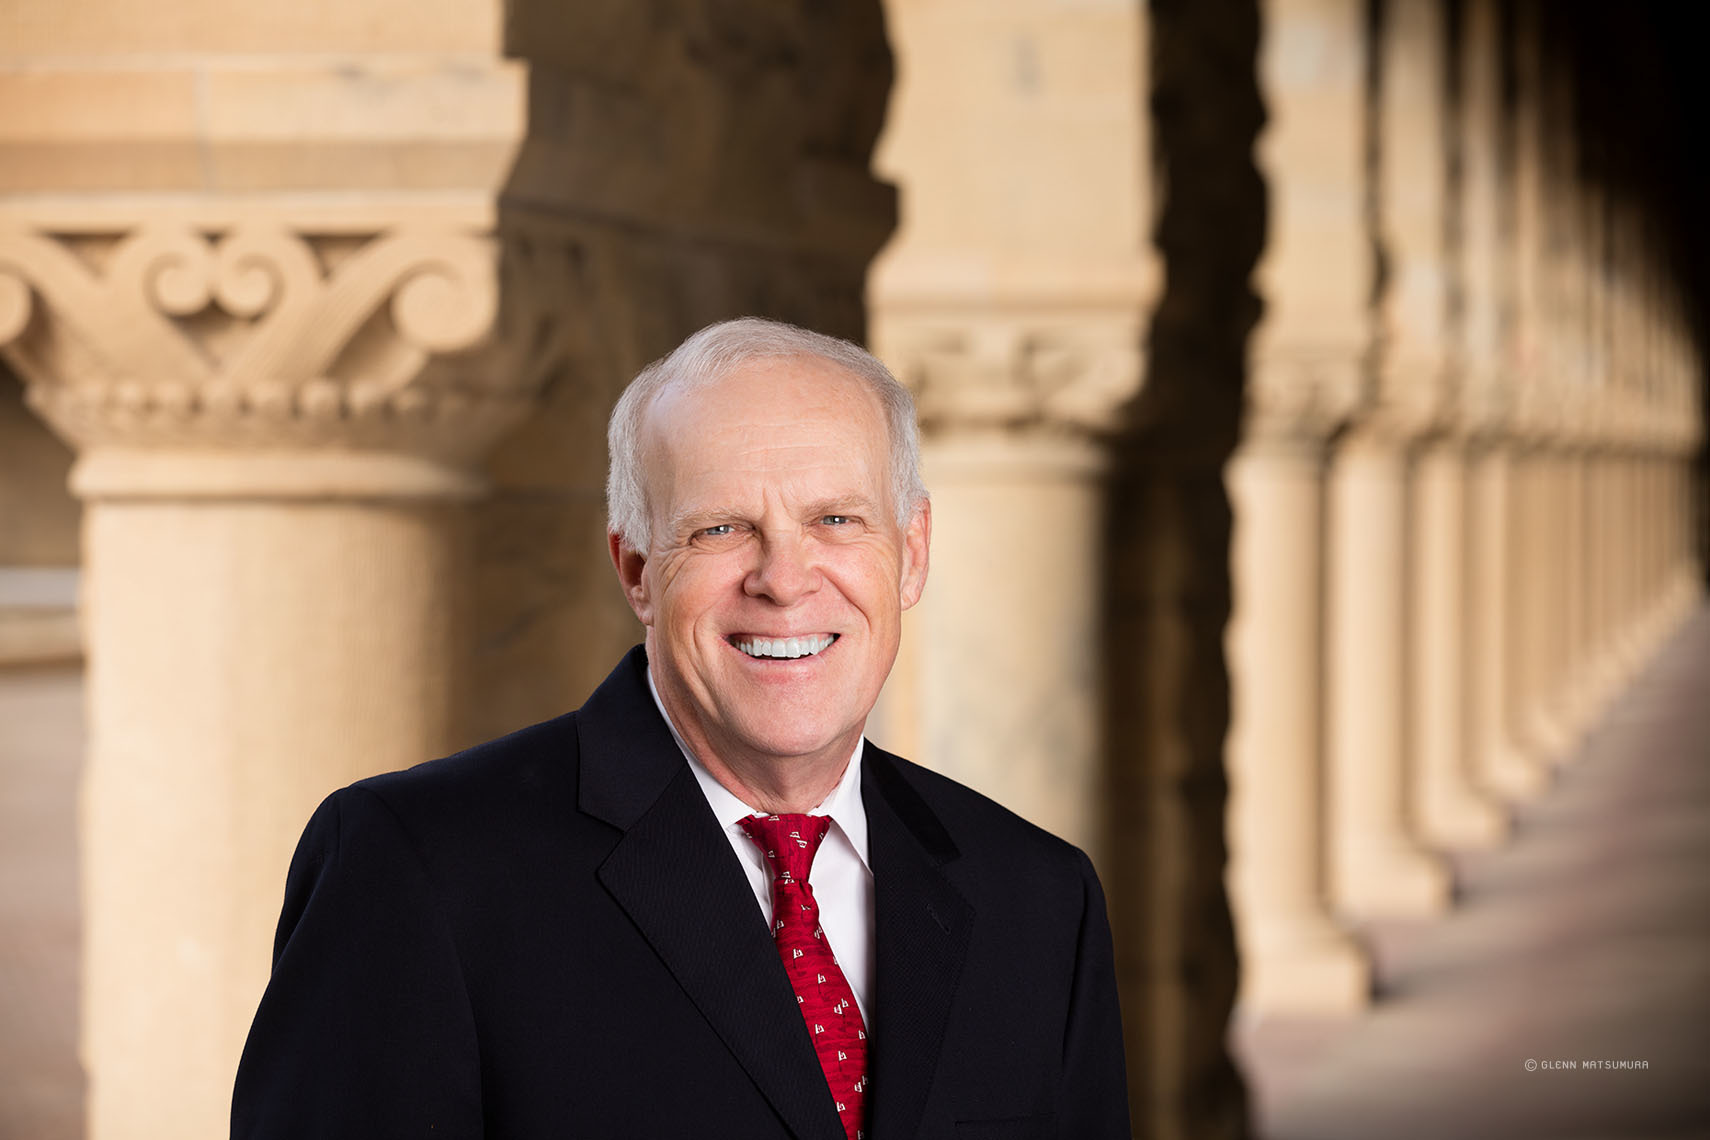 Stanford President John L. Hennessy photographed at the Stanford